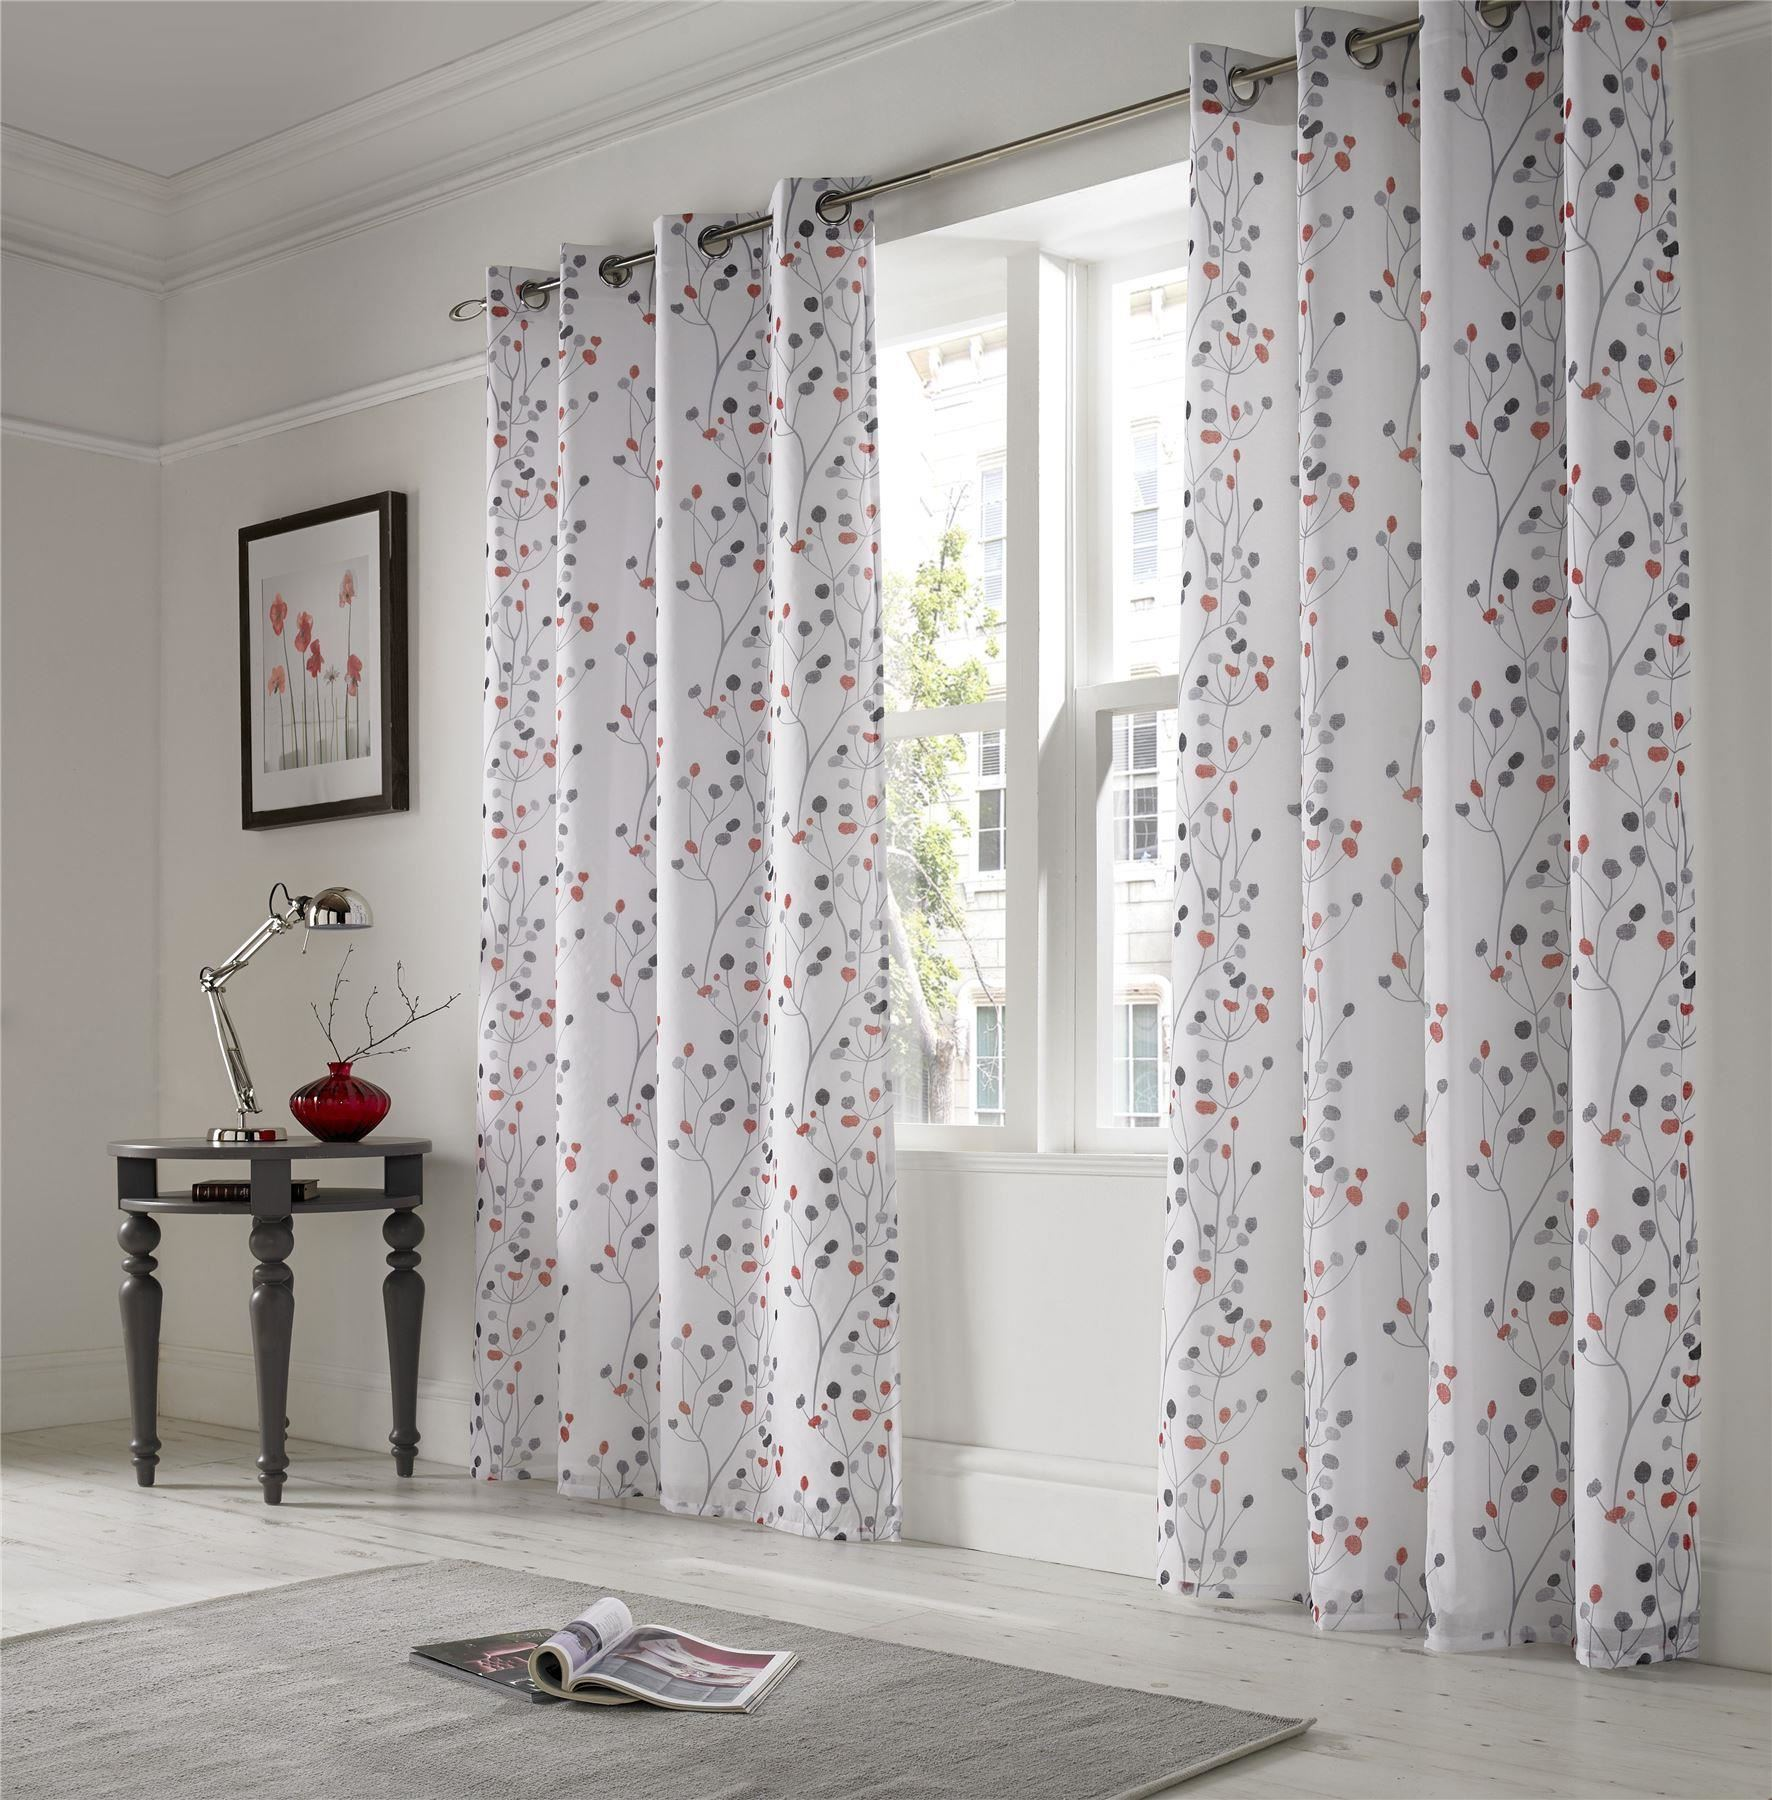 Lined Linen Drapes: LINEN LOOK FLORAL RED WHITE LINED RING TOP VOILE CURTAINS